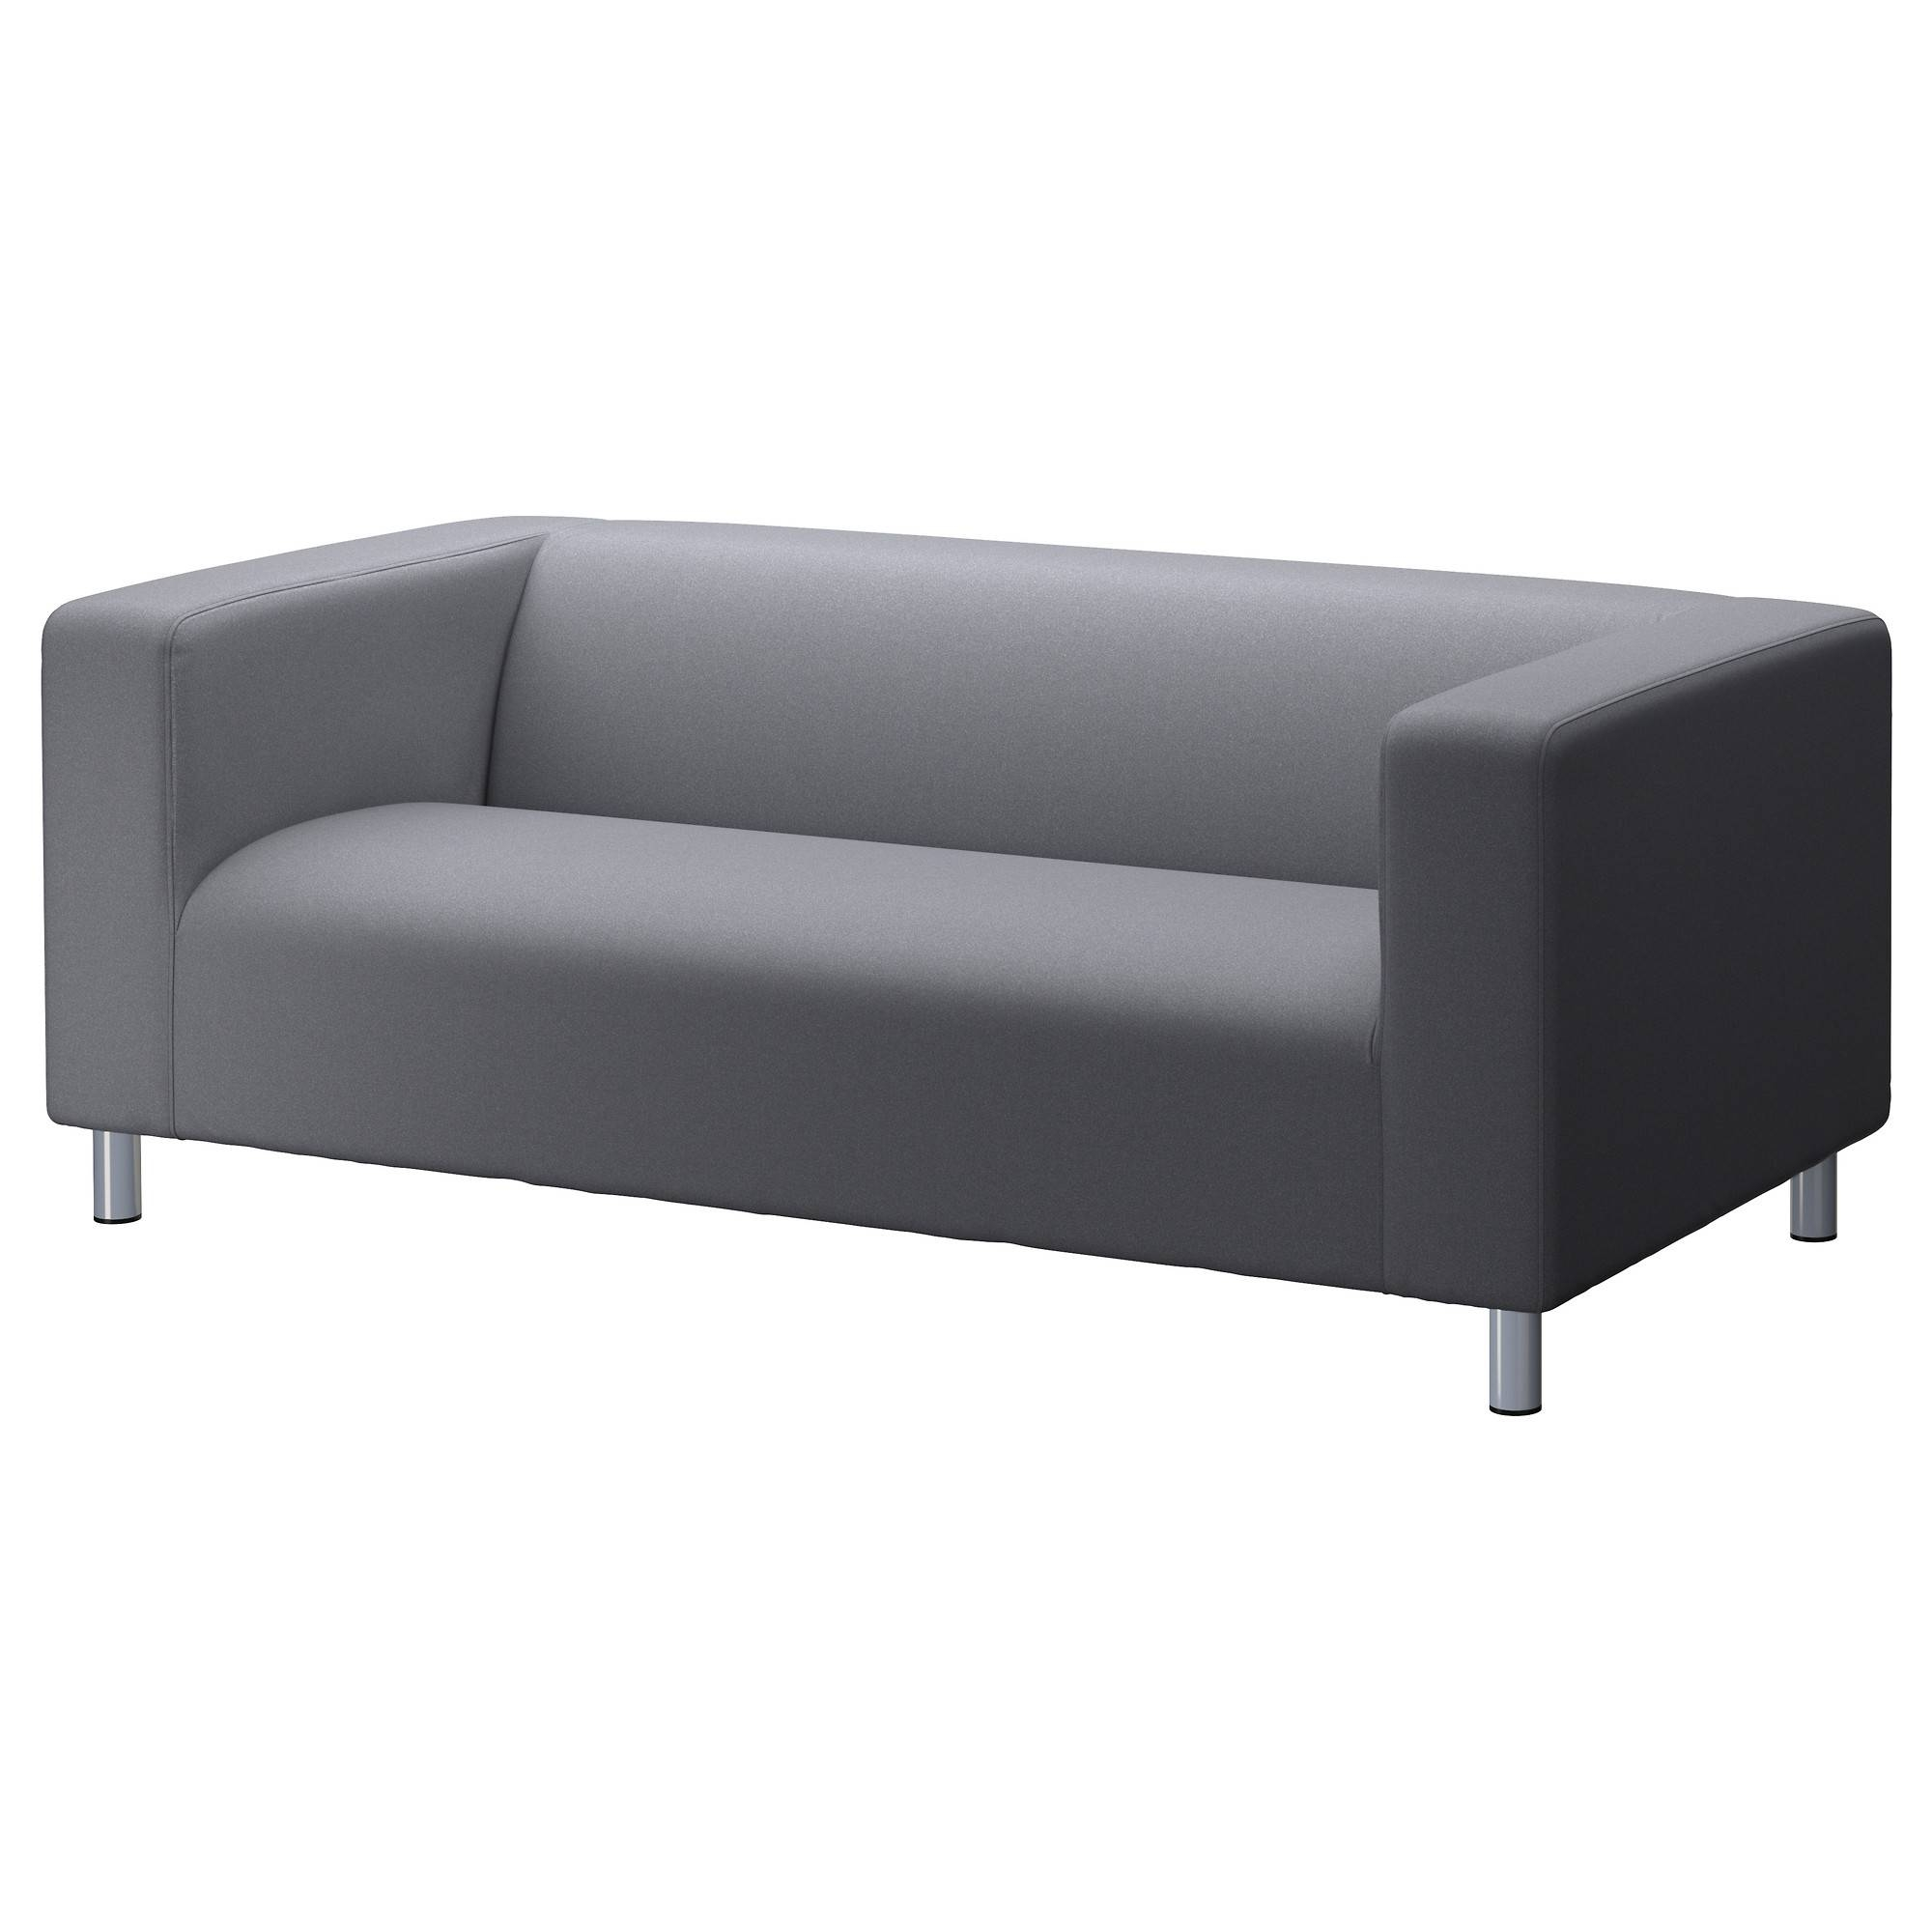 Klippan Two-Seat Sofa Flackarp Grey - Ikea in Ikea Two Seater Sofas (Image 15 of 30)